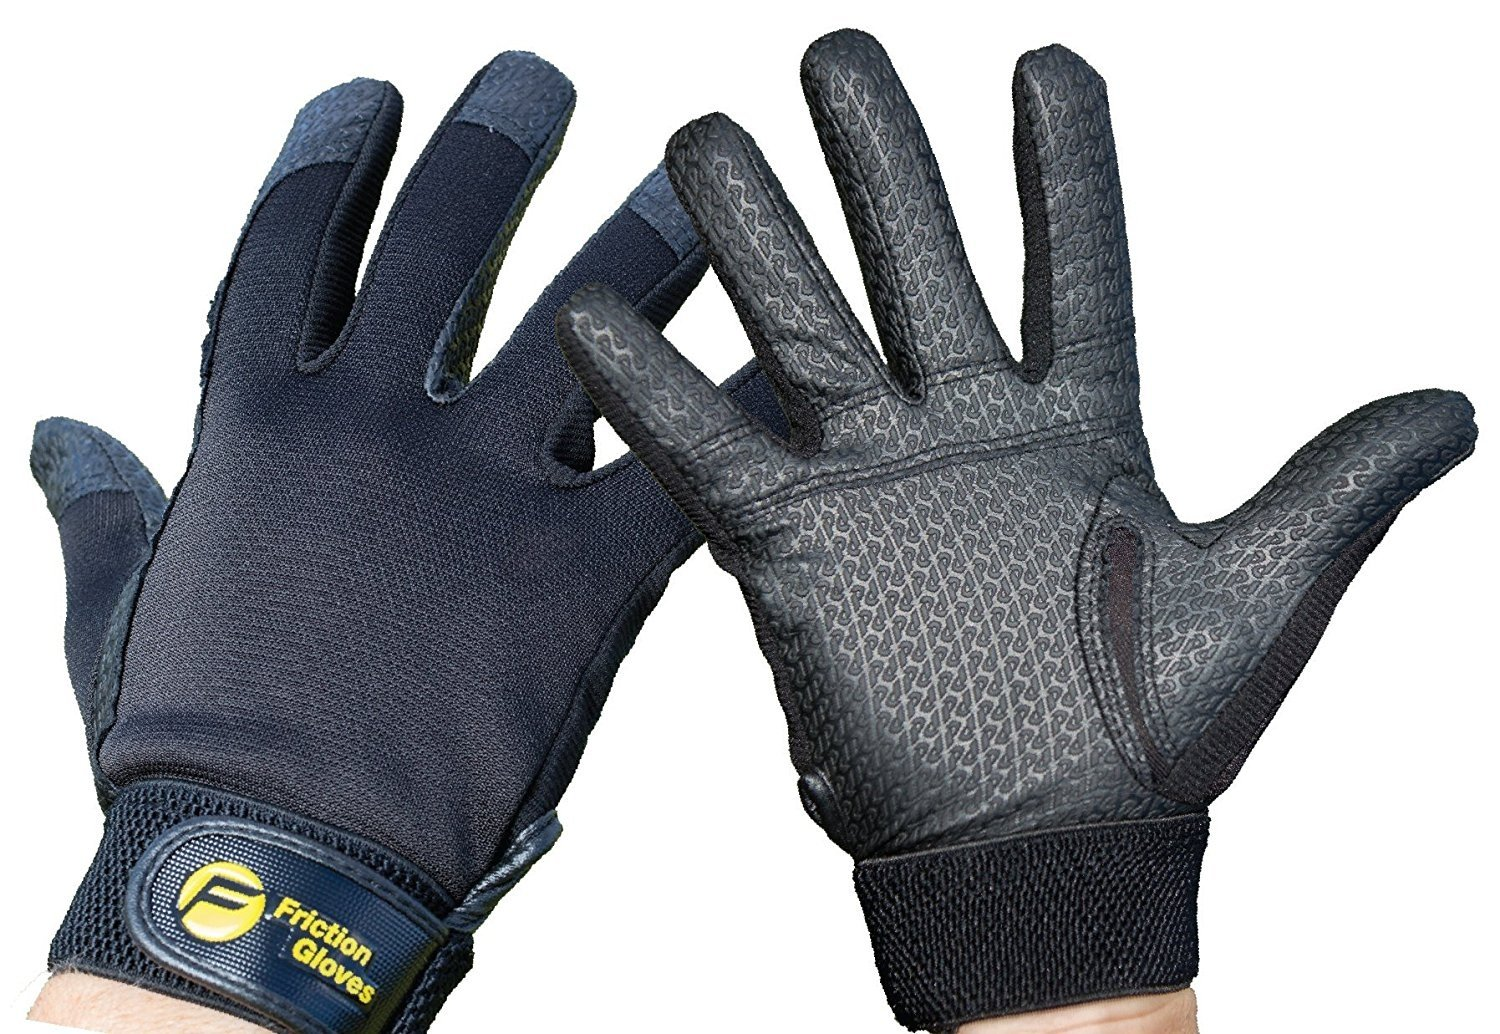 Friction Gloves Friction Ultimate Frisbee Gloves - #1 World's Ultimate Glove. Improve Throws & Catches (Men's XXL)